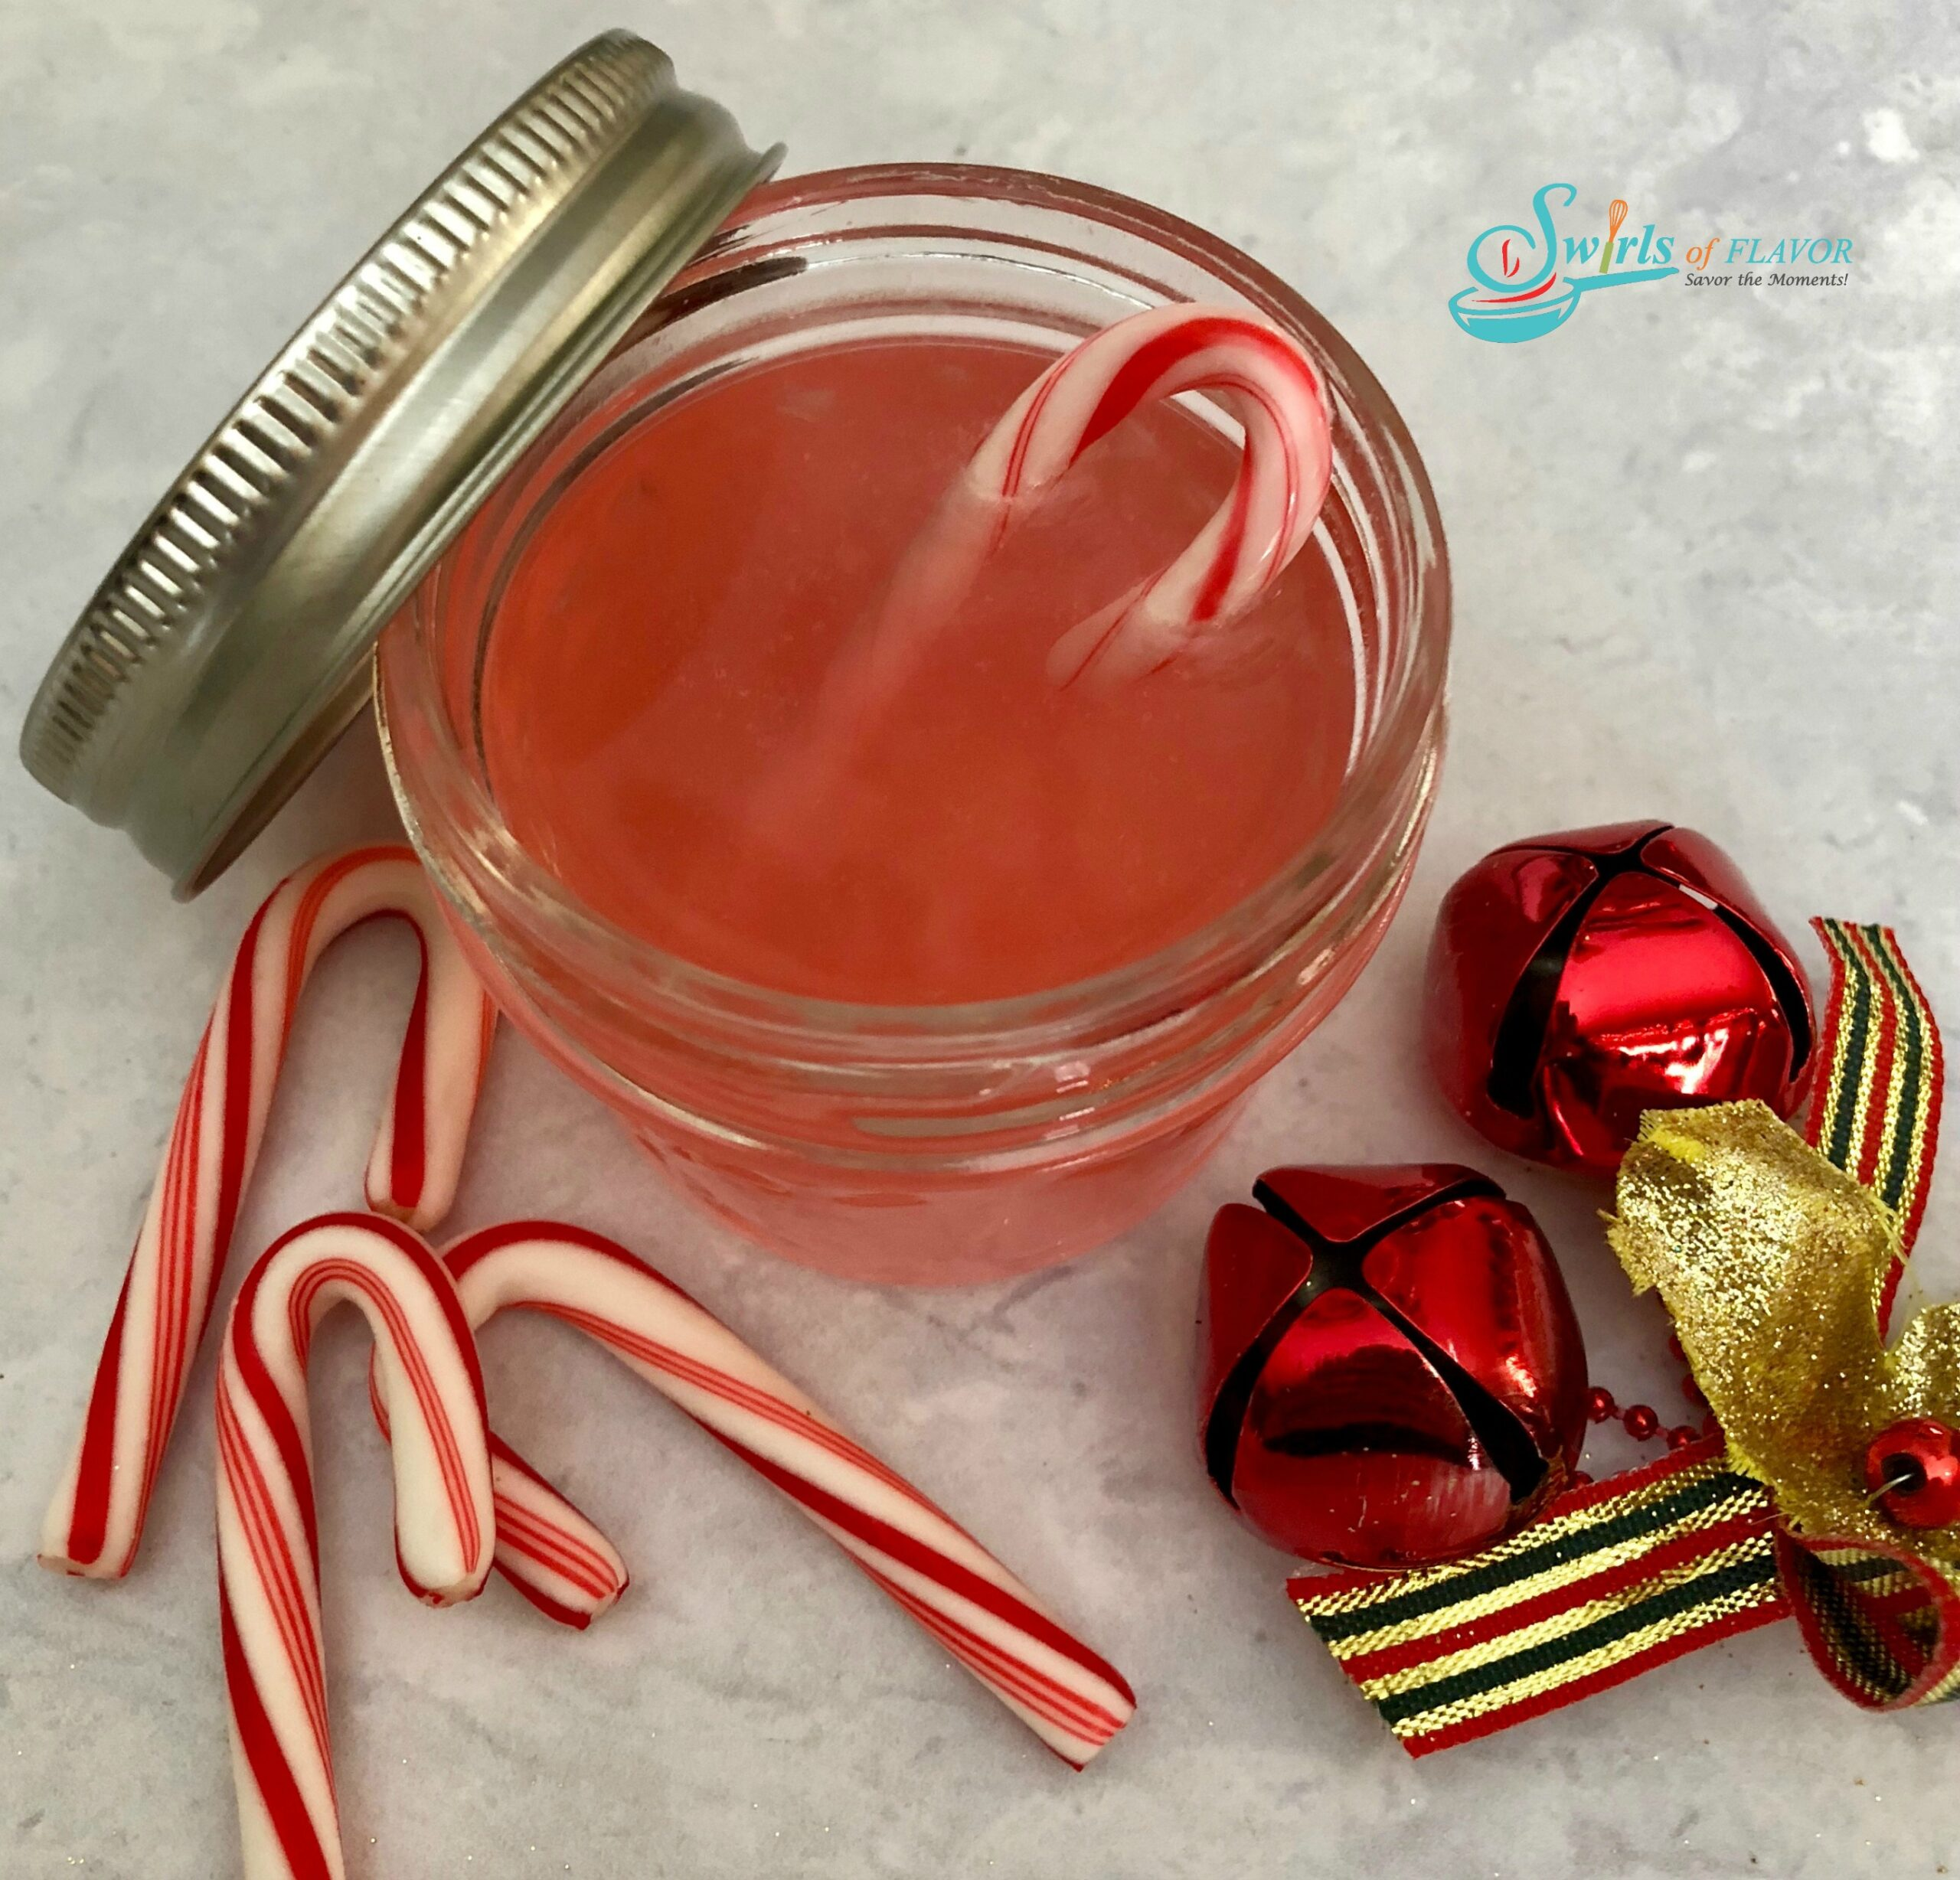 candy cane vodka with Christmas ornament